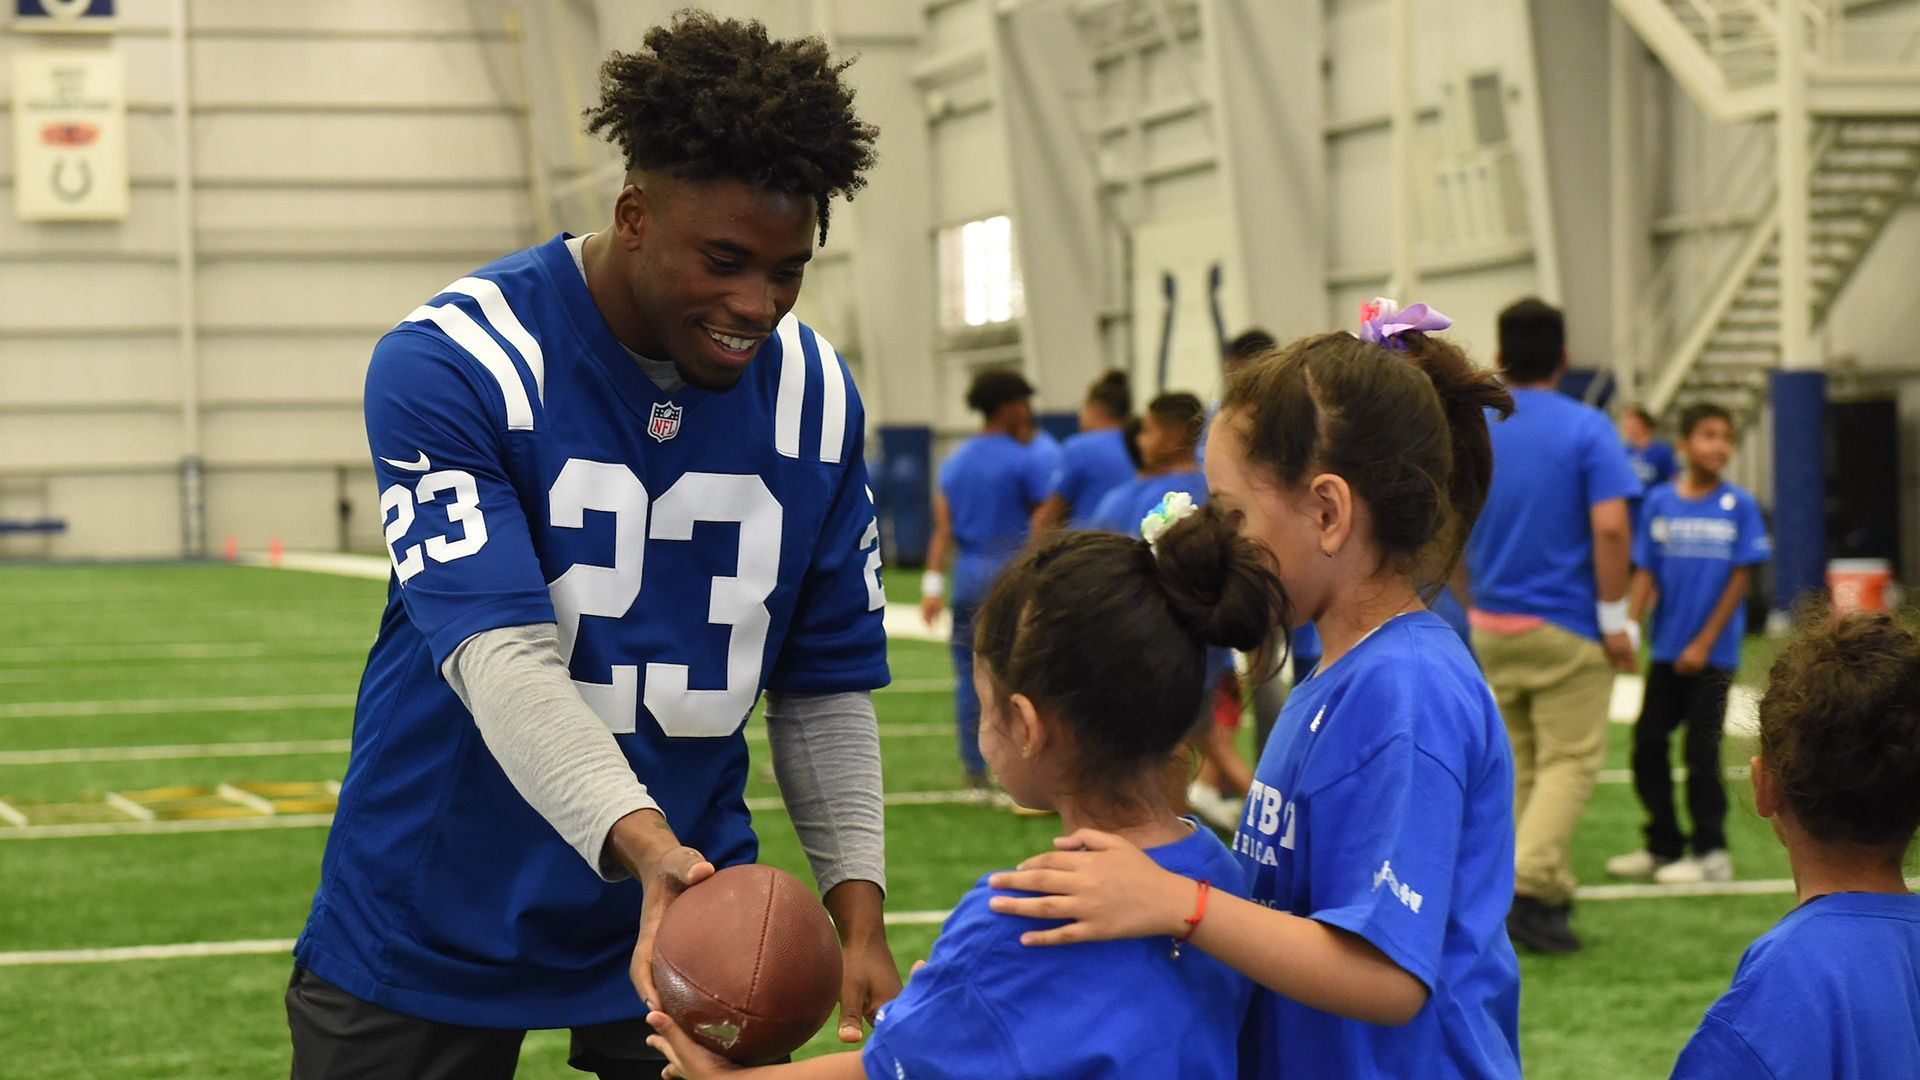 Colts Give Back